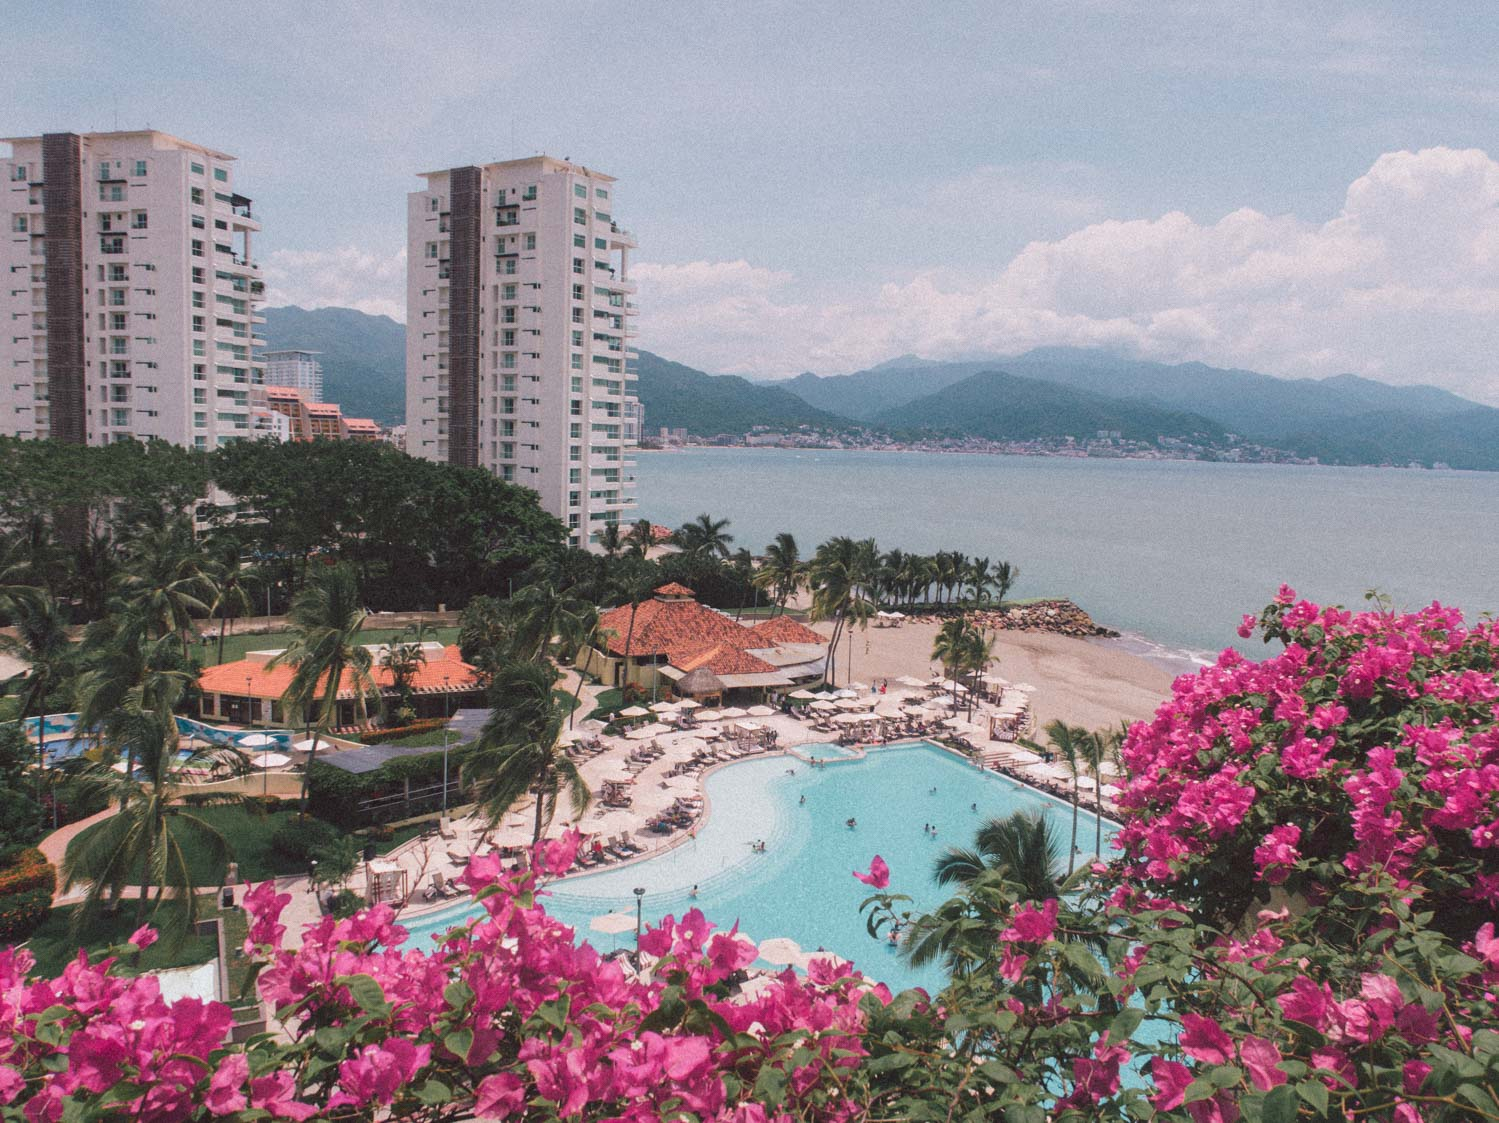 Where to Stay in Mexico: Marriott Puerto Vallarta Review